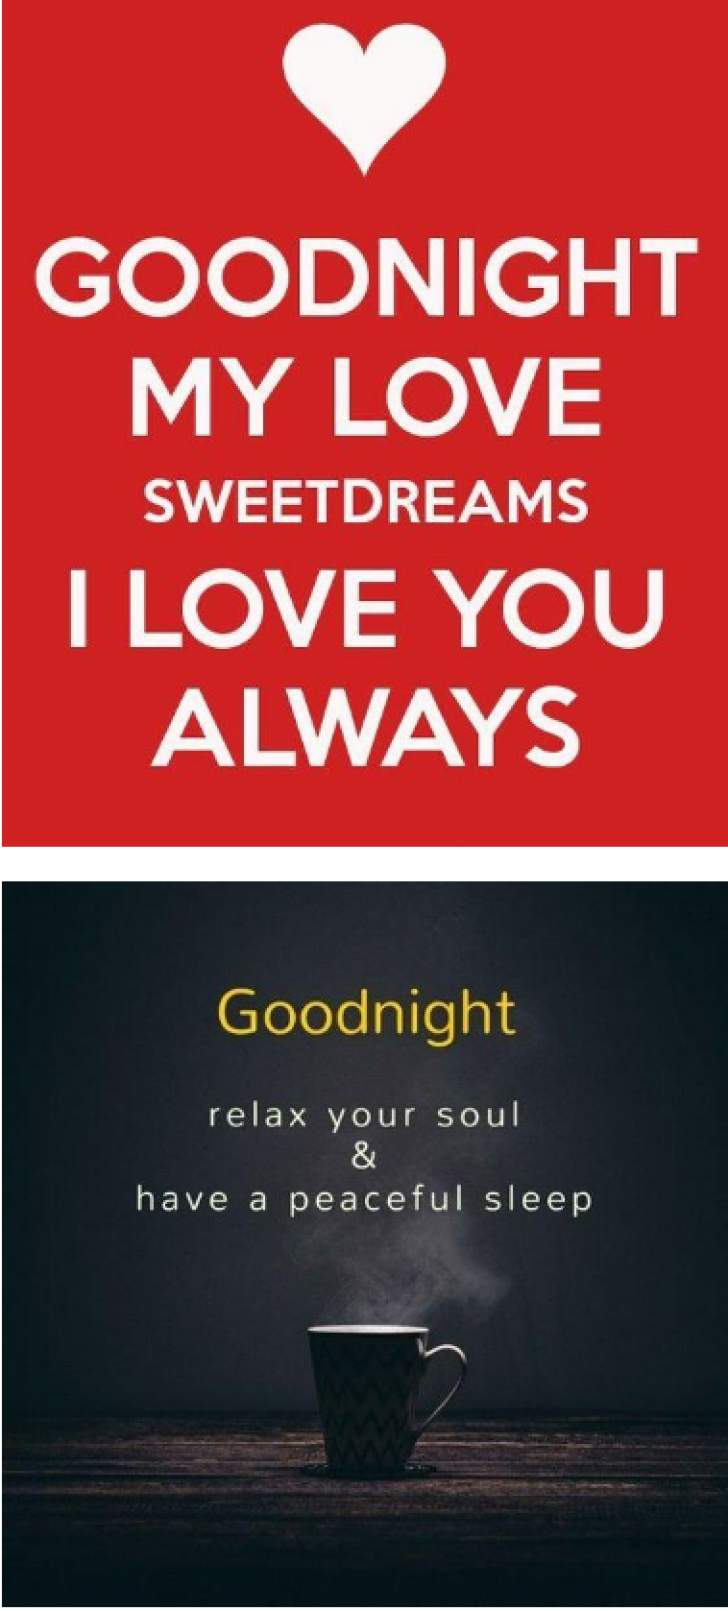 Cute goodnight messages to impress your beloved - Bulawayo24 News